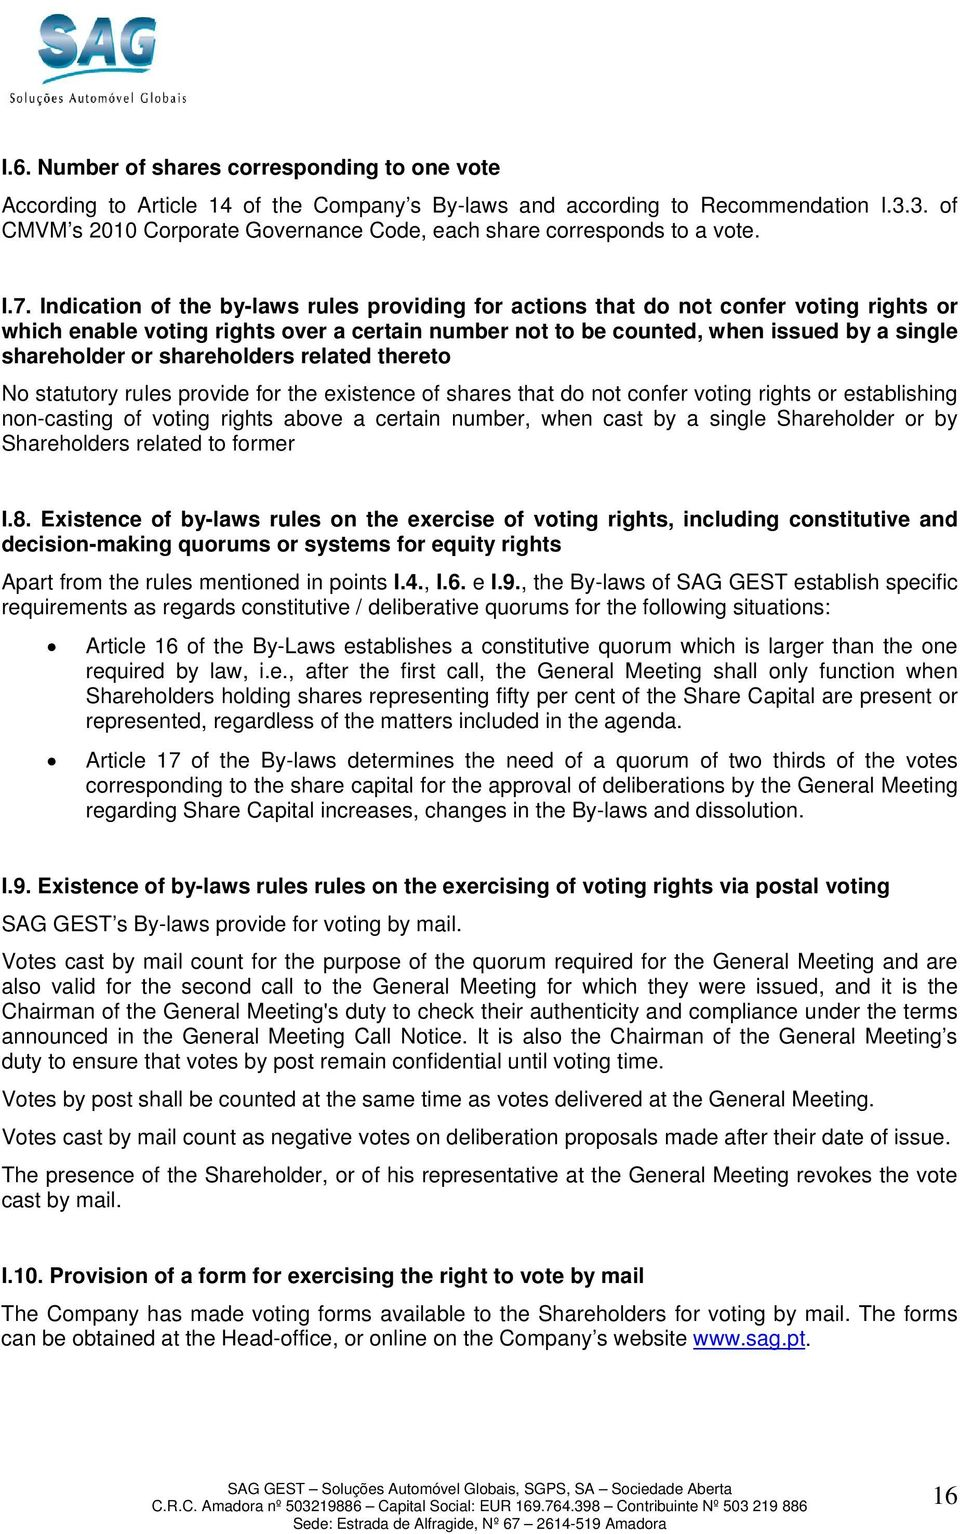 Indication of the by-laws rules providing for actions that do not confer voting rights or which enable voting rights over a certain number not to be counted, when issued by a single shareholder or